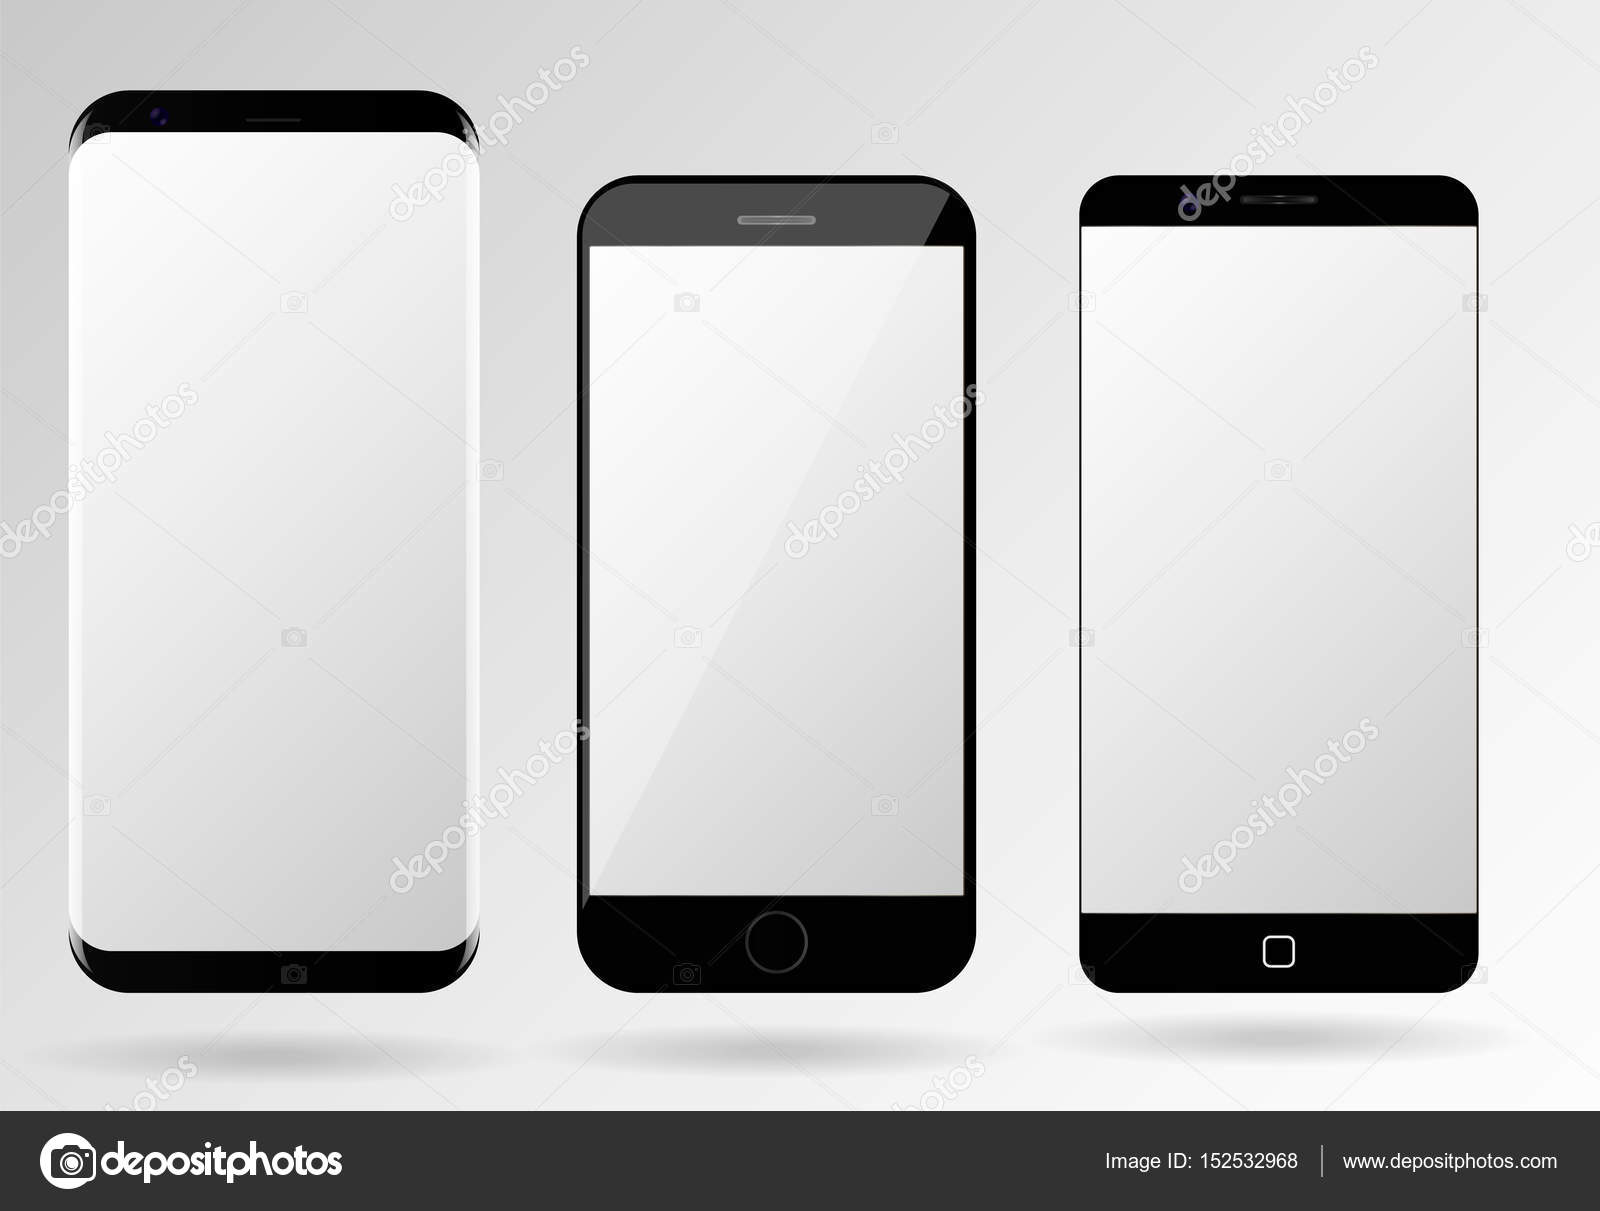 Smartphone Mockup Blank Mobile Phone Template Stock Vector